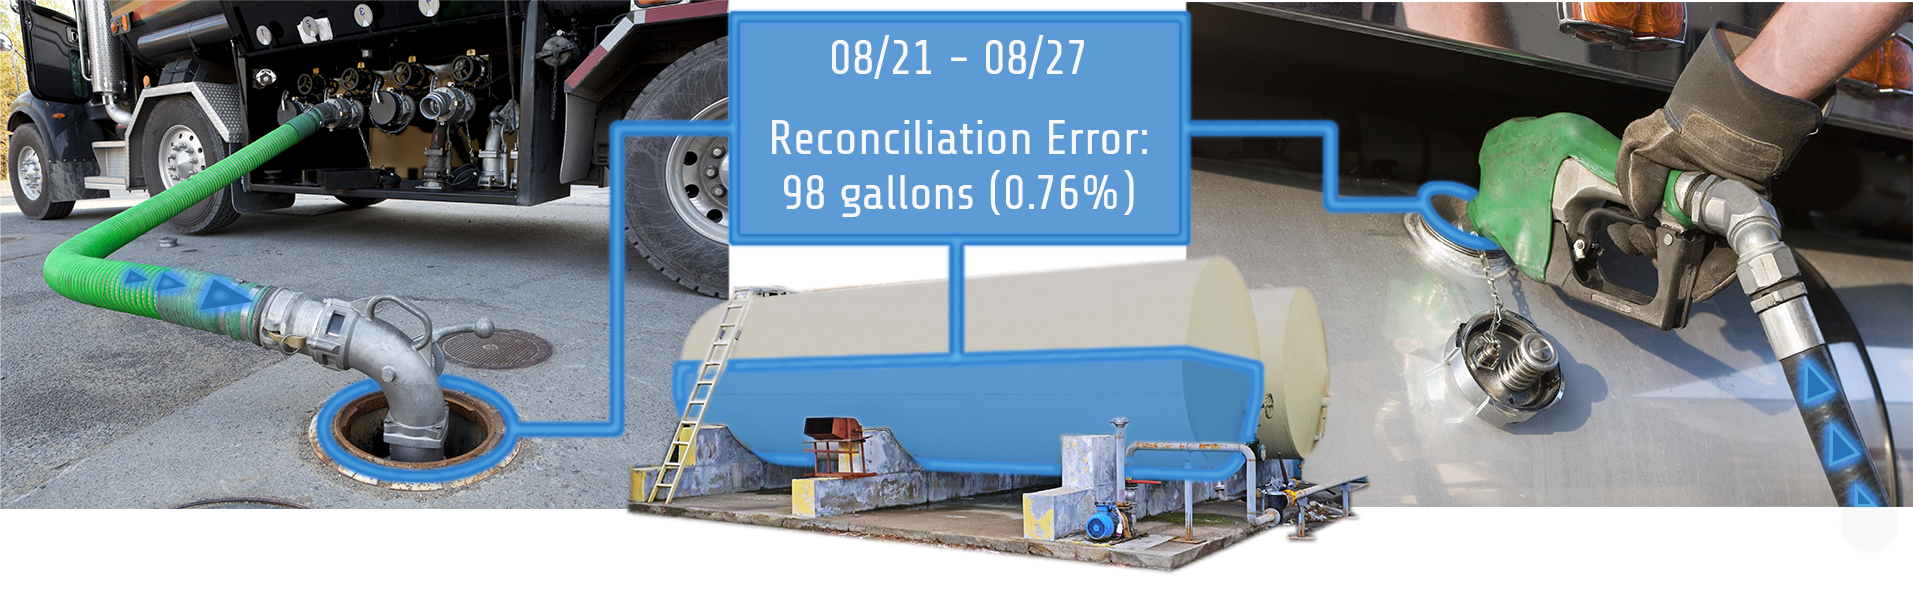 Fuel reconciliation using tank gauging system-SM2-FUEL-1